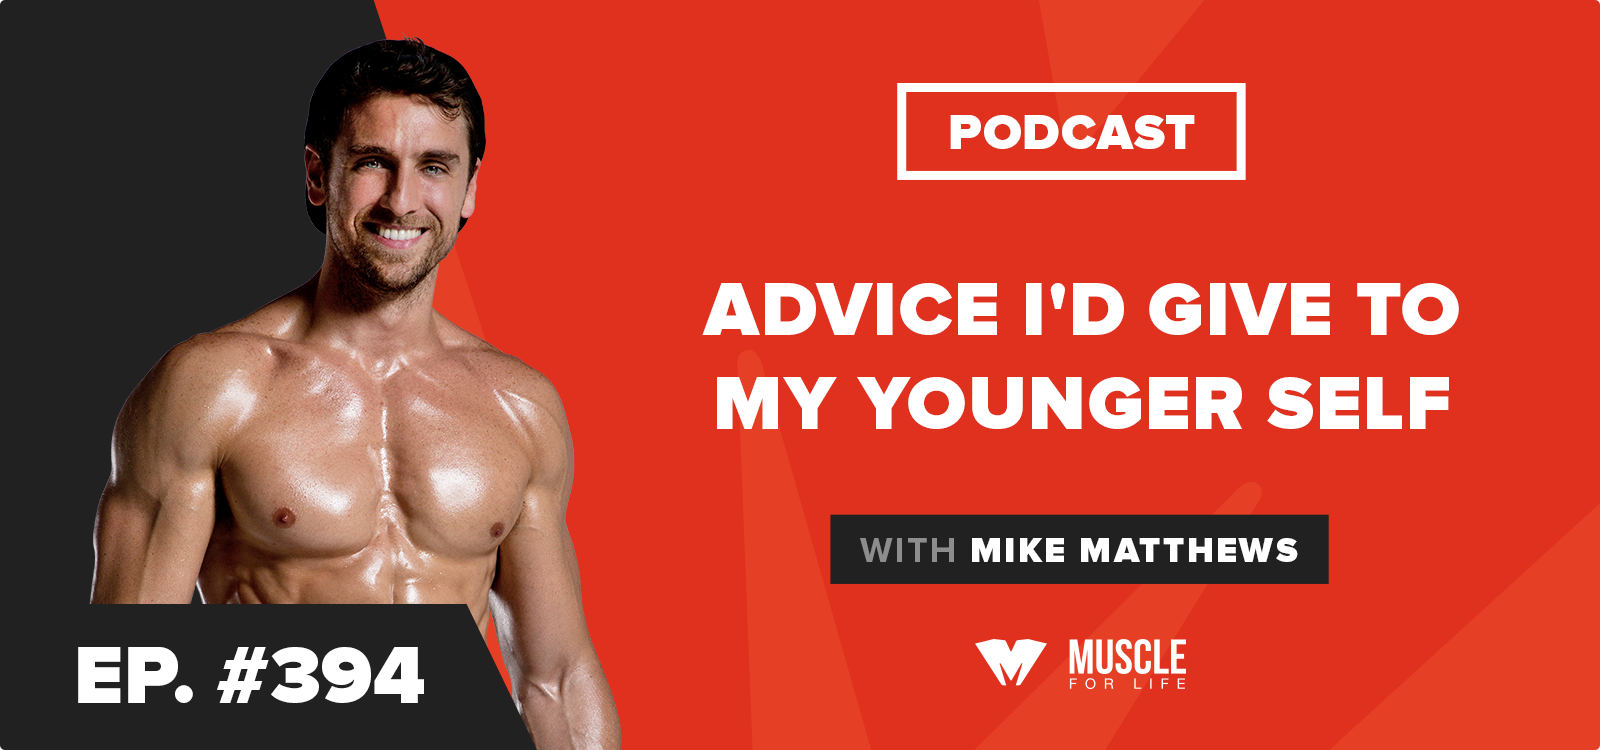 Motivation Monday: Advice I'd Give to My Younger Self